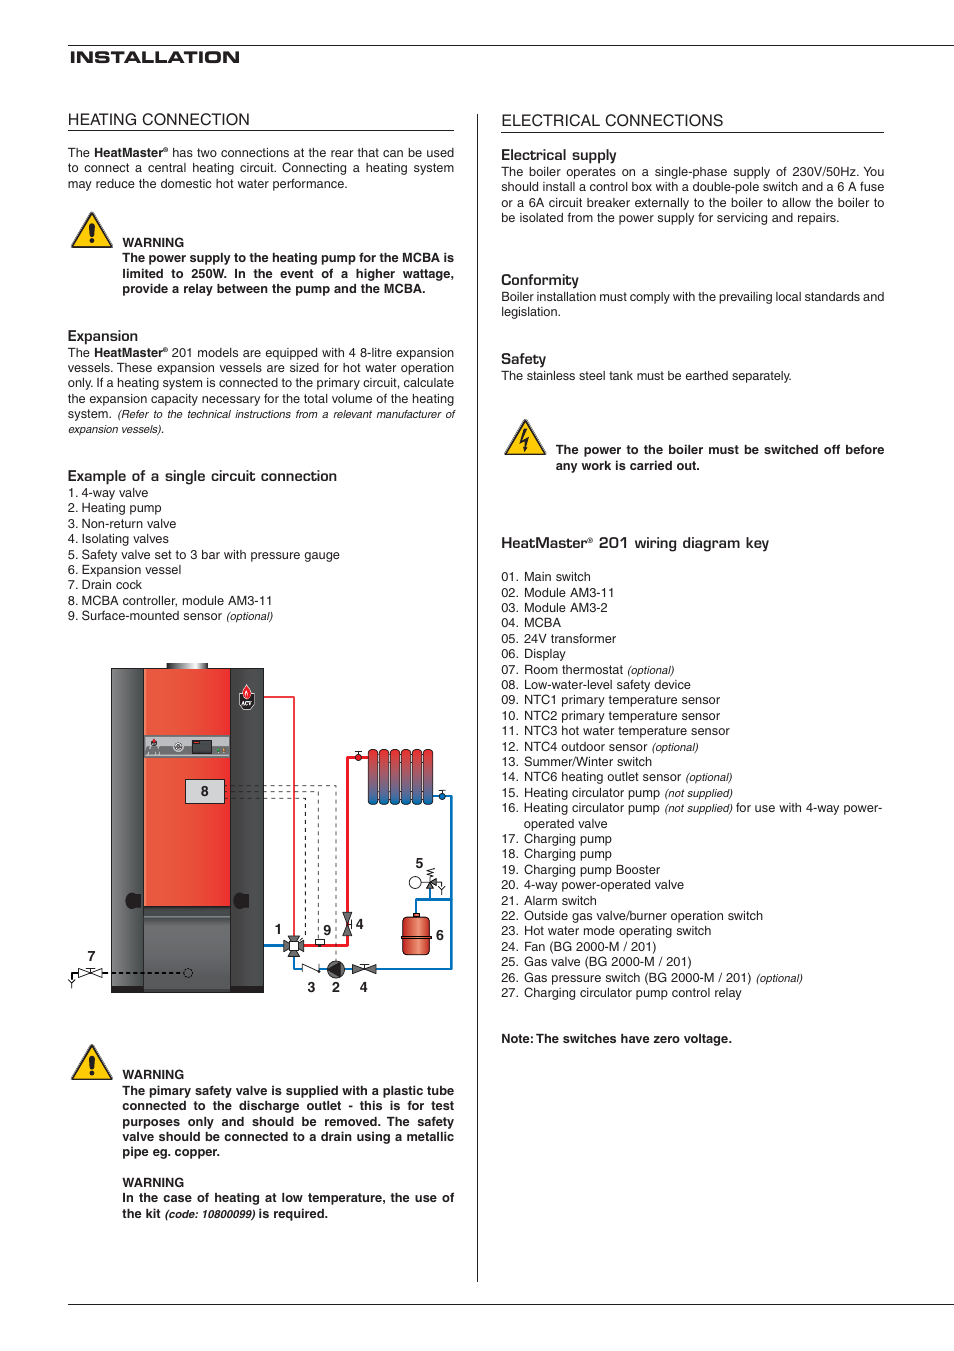 Electrical Connections Installation Heating Connection Heatmaster 3 Phase 12 Poll Switch Wiring Diagram 201 User Manual Page 28